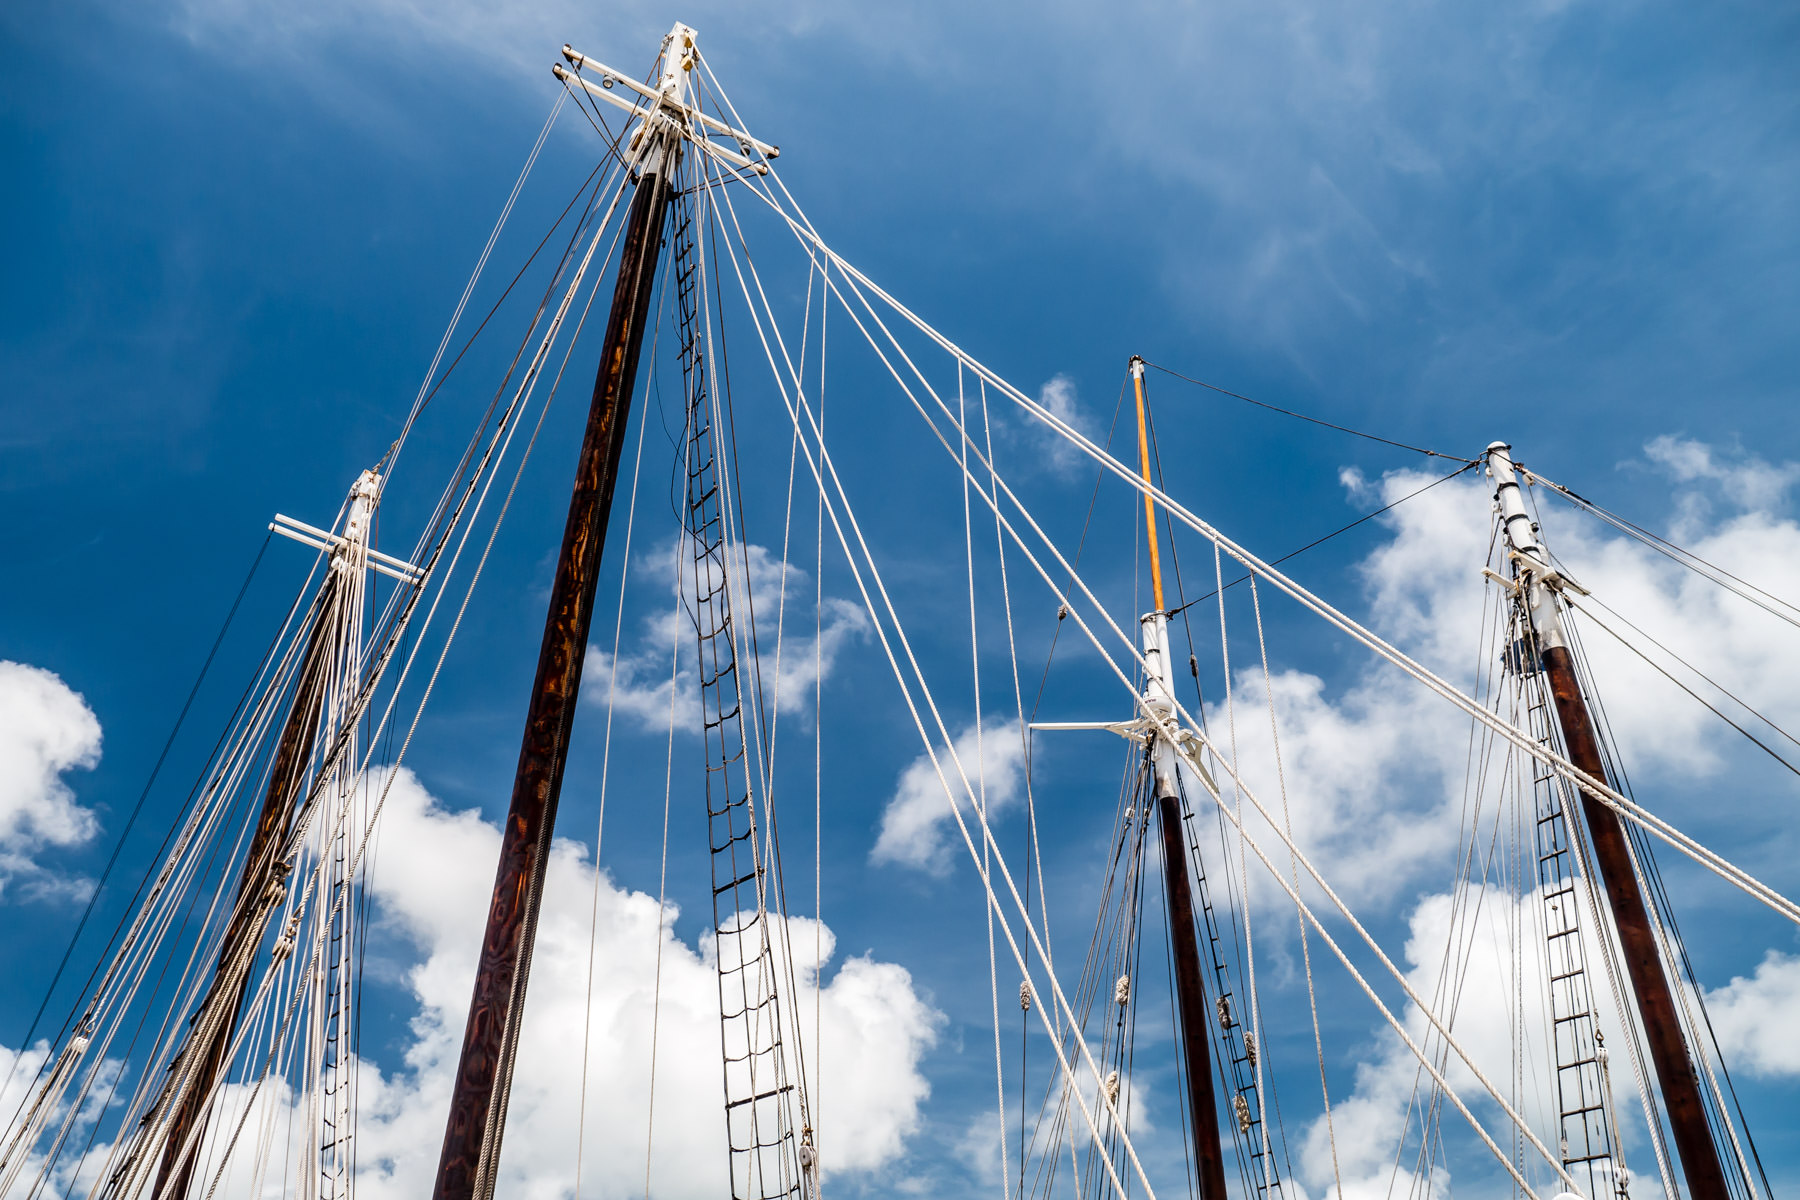 Sailboat masts rise into the blue Florida sky at Key West Harbor.